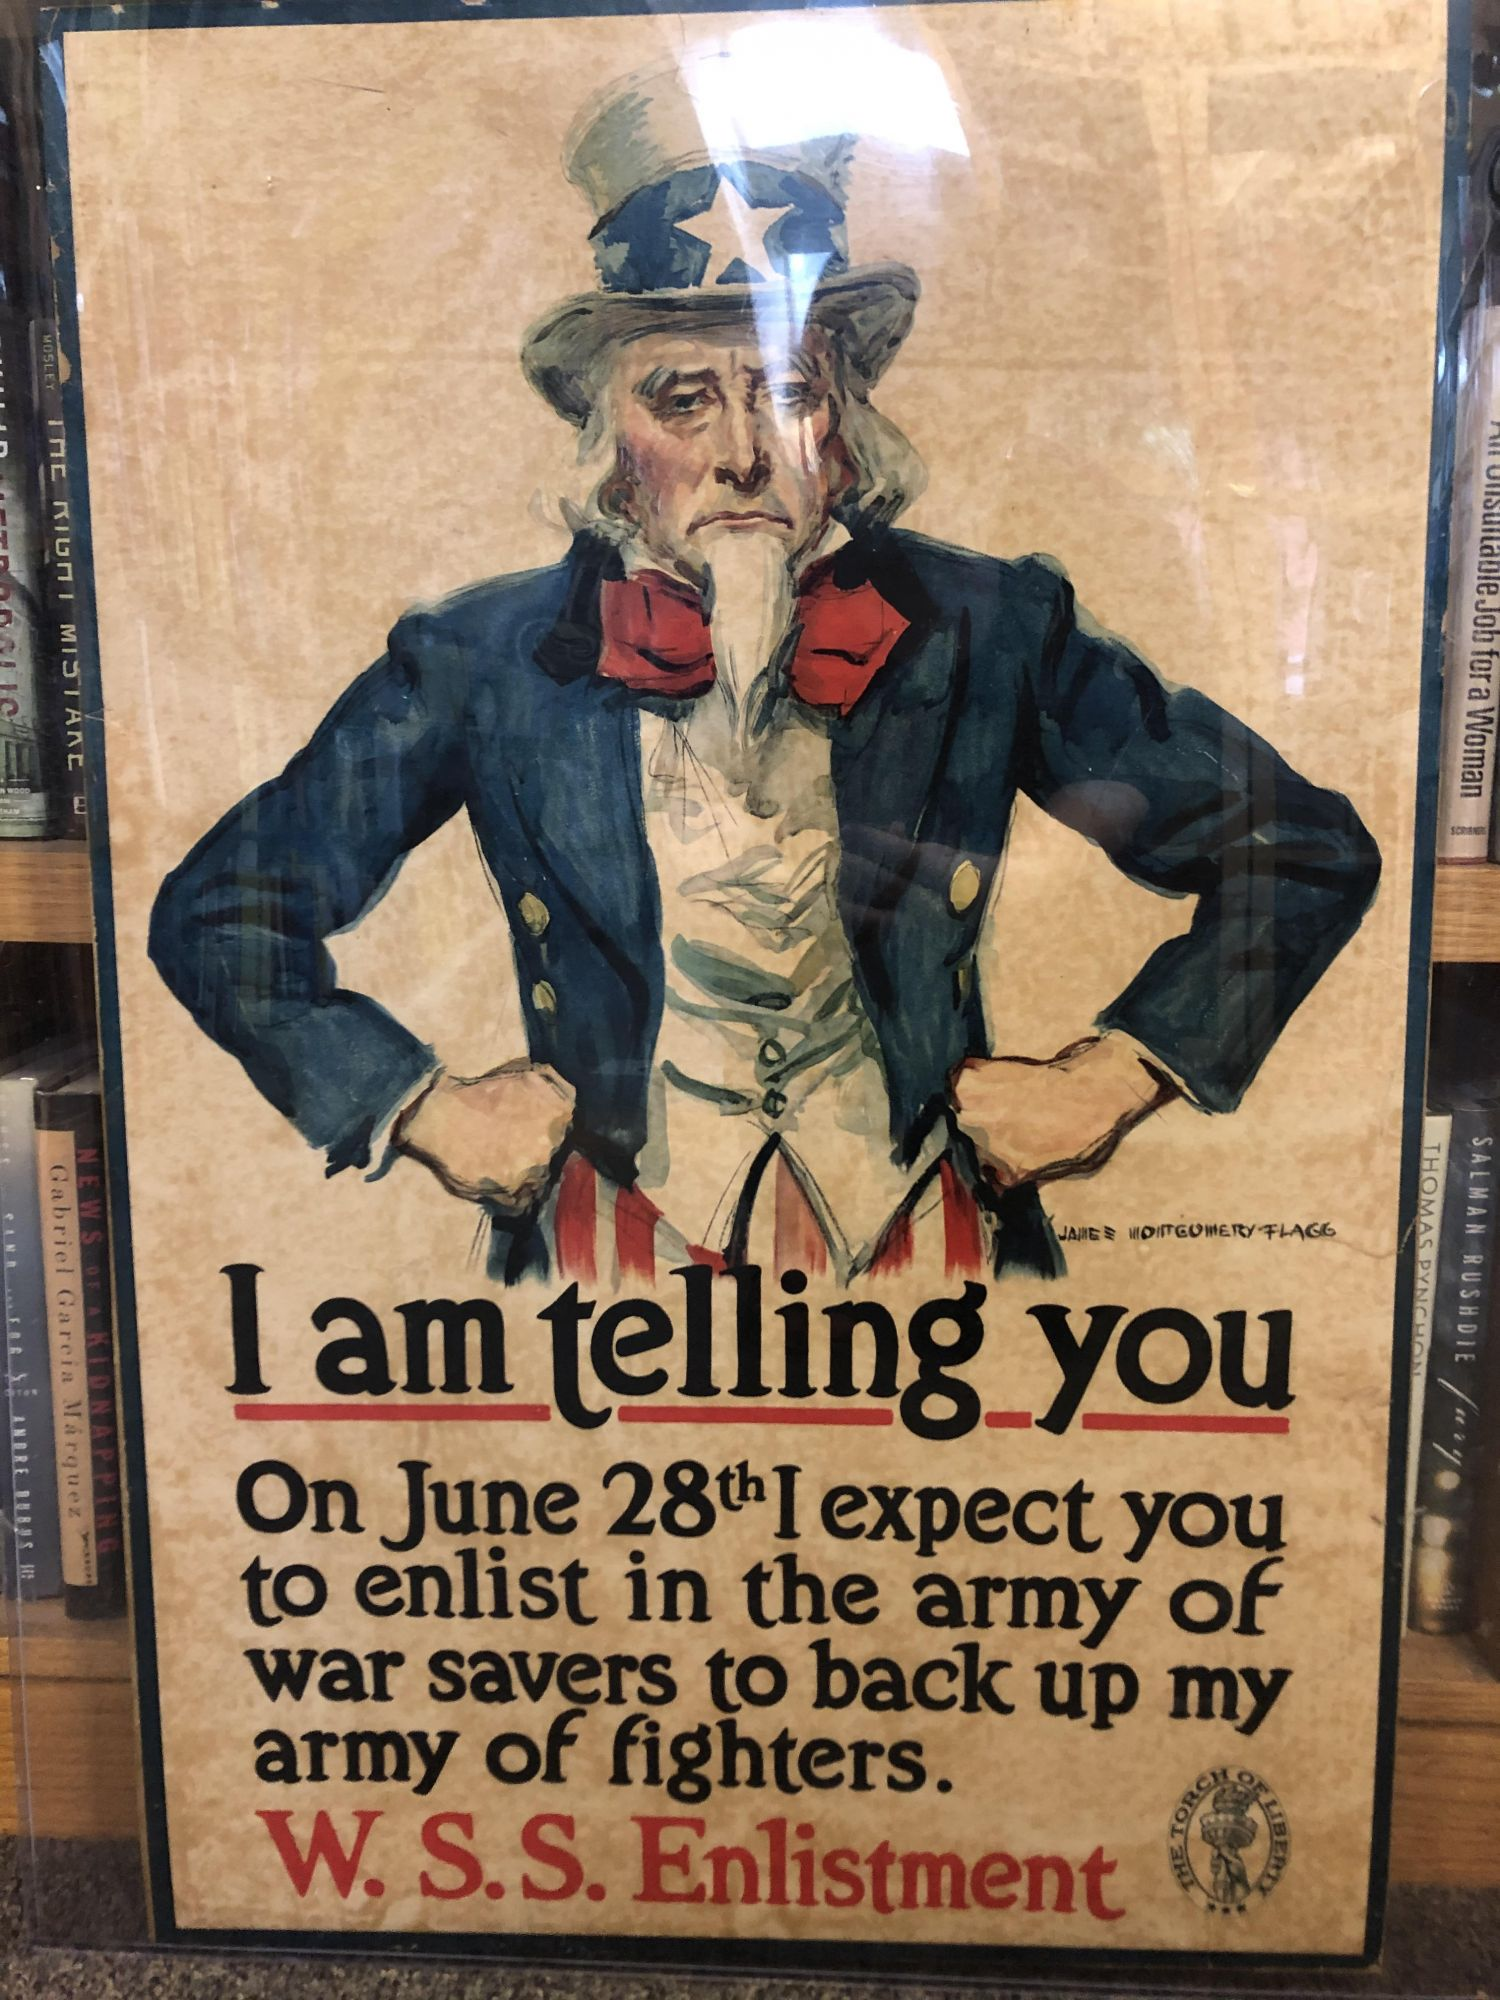 I Am Telling You. James Montgomery Flagg.